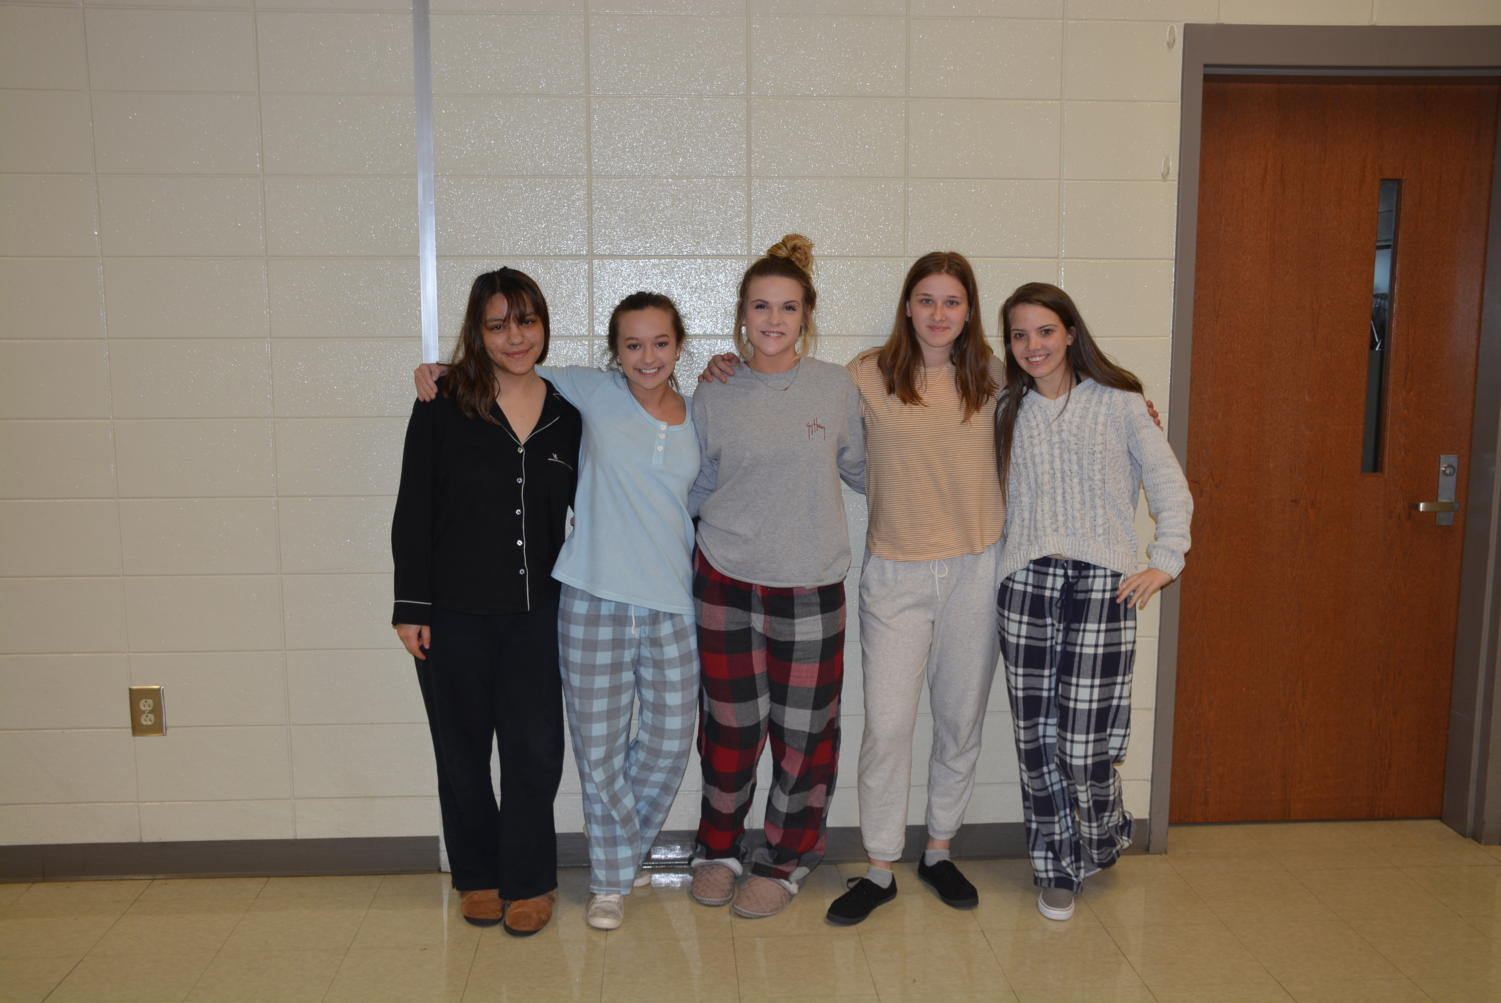 Students+dressed+up+for+pajama+day+